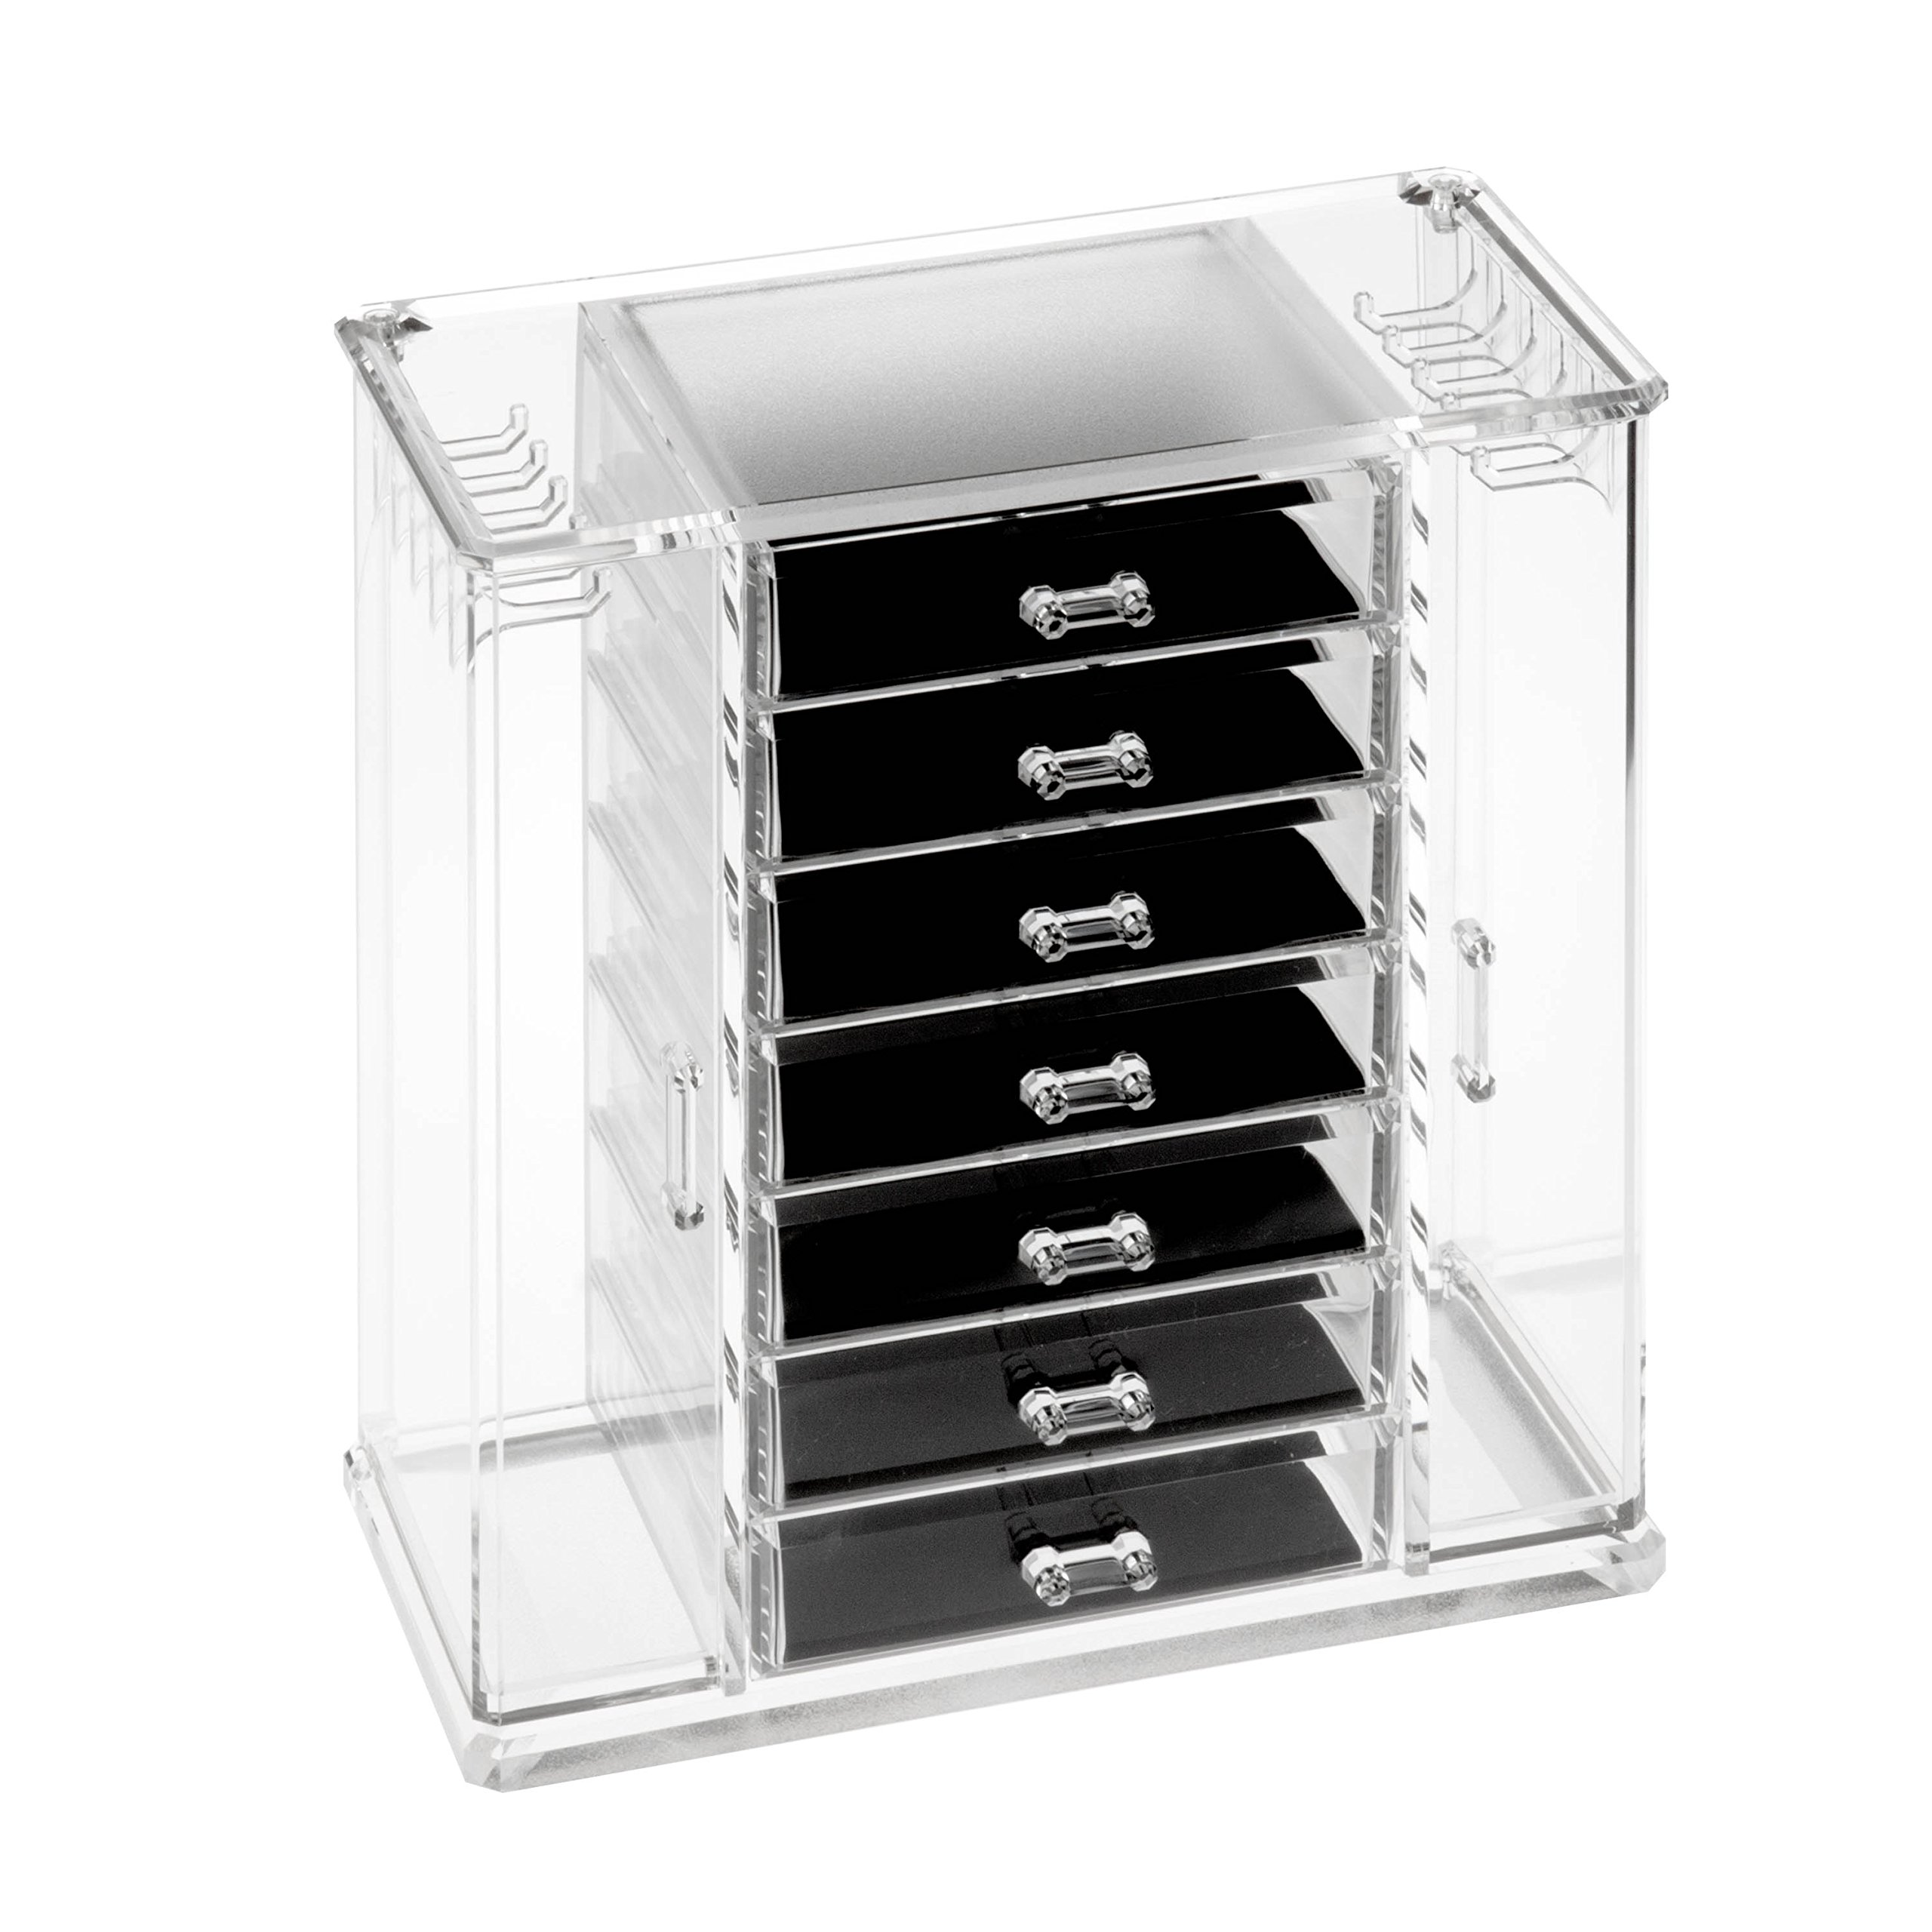 HCD Refined by Honey-Can-Do STO-06383 Arielle Jewelry Chest, 12.1L x 7.2W x 12.4H by Honey-Can-Do